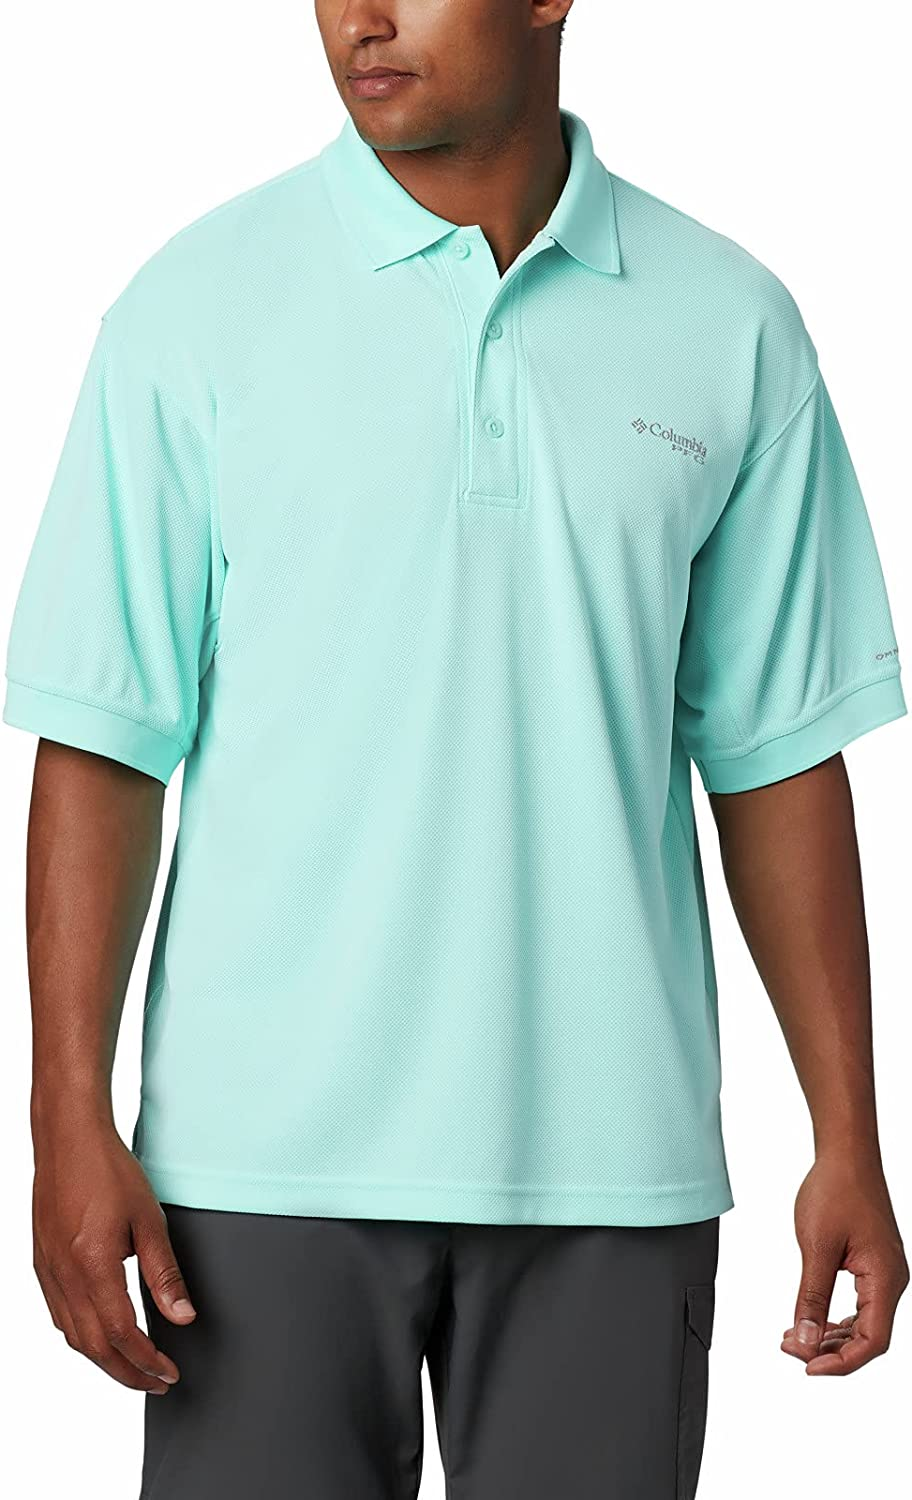 Columbia Men's Perfect Shirt Recommended Polo Cast Houston Mall